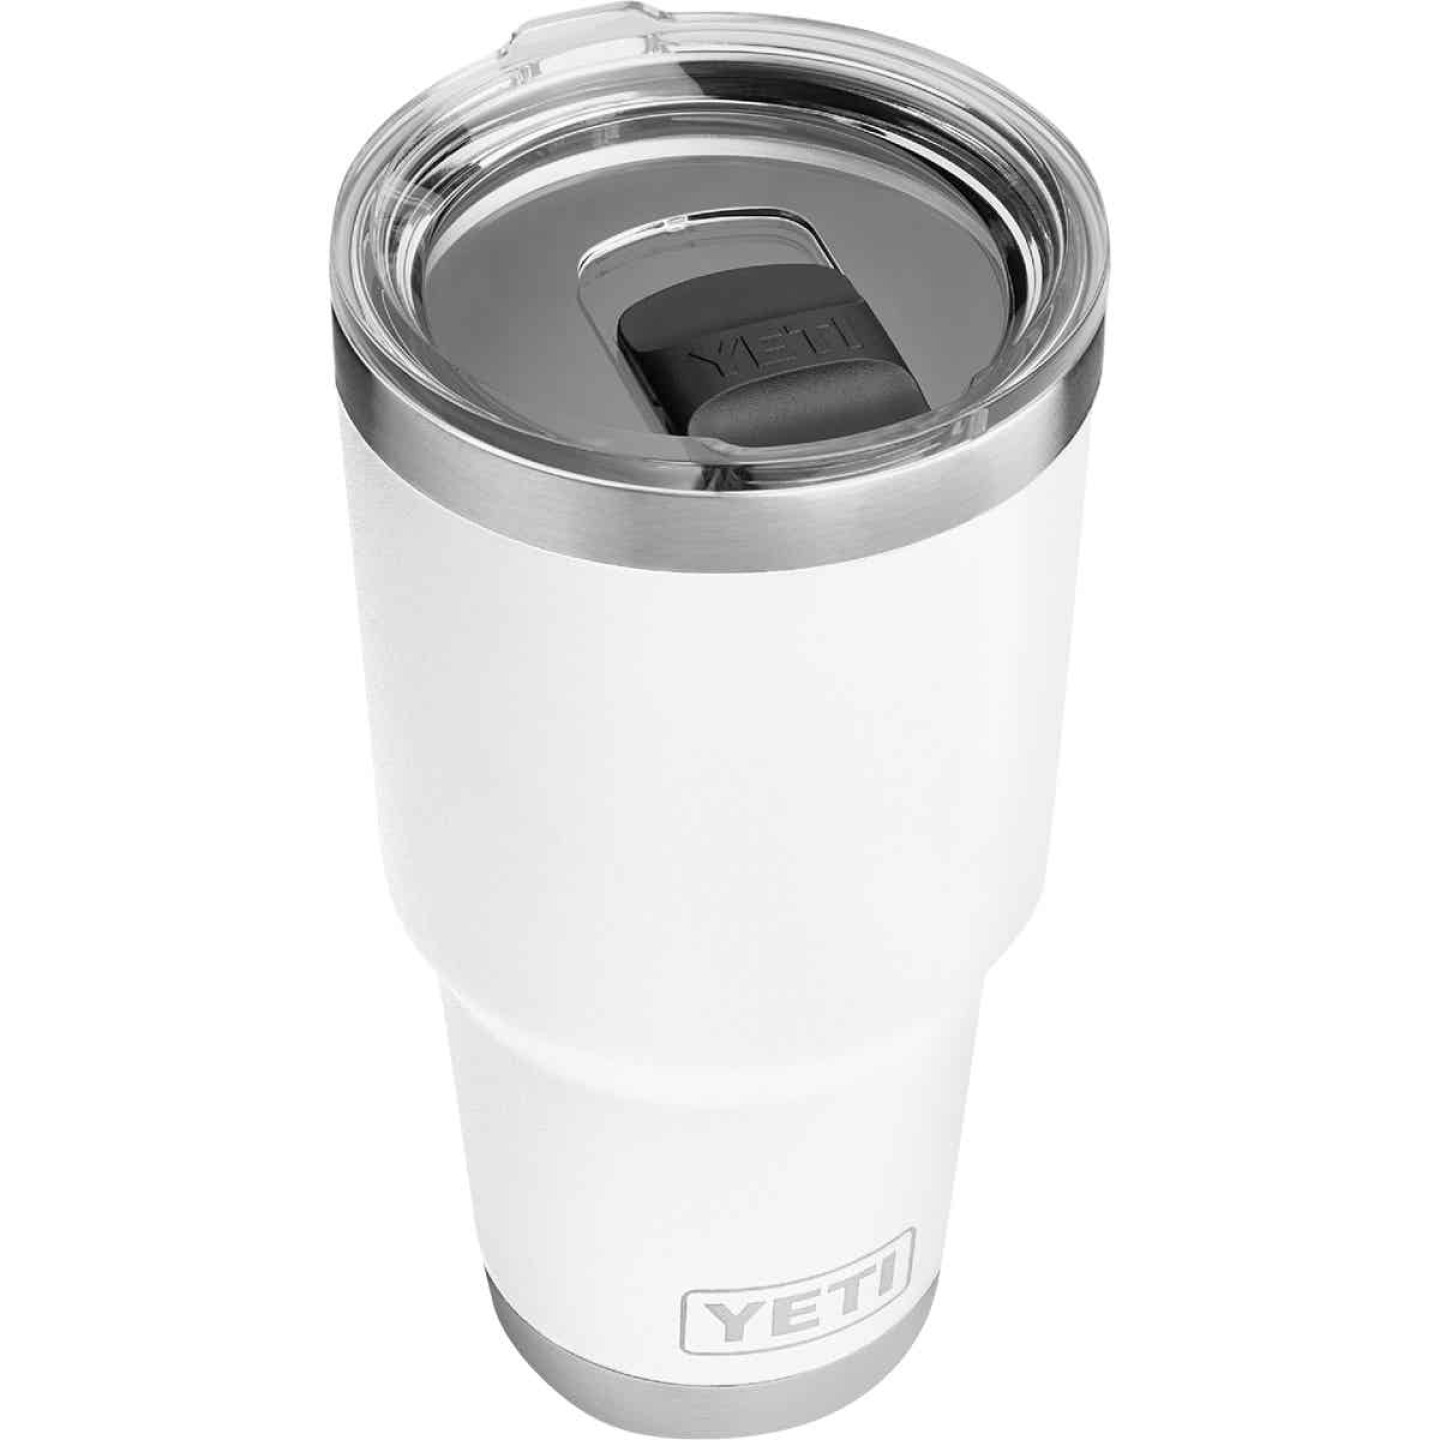 Yeti Rambler 30 Oz. White Stainless Steel Insulated Tumbler with MagSlider Lid Image 1